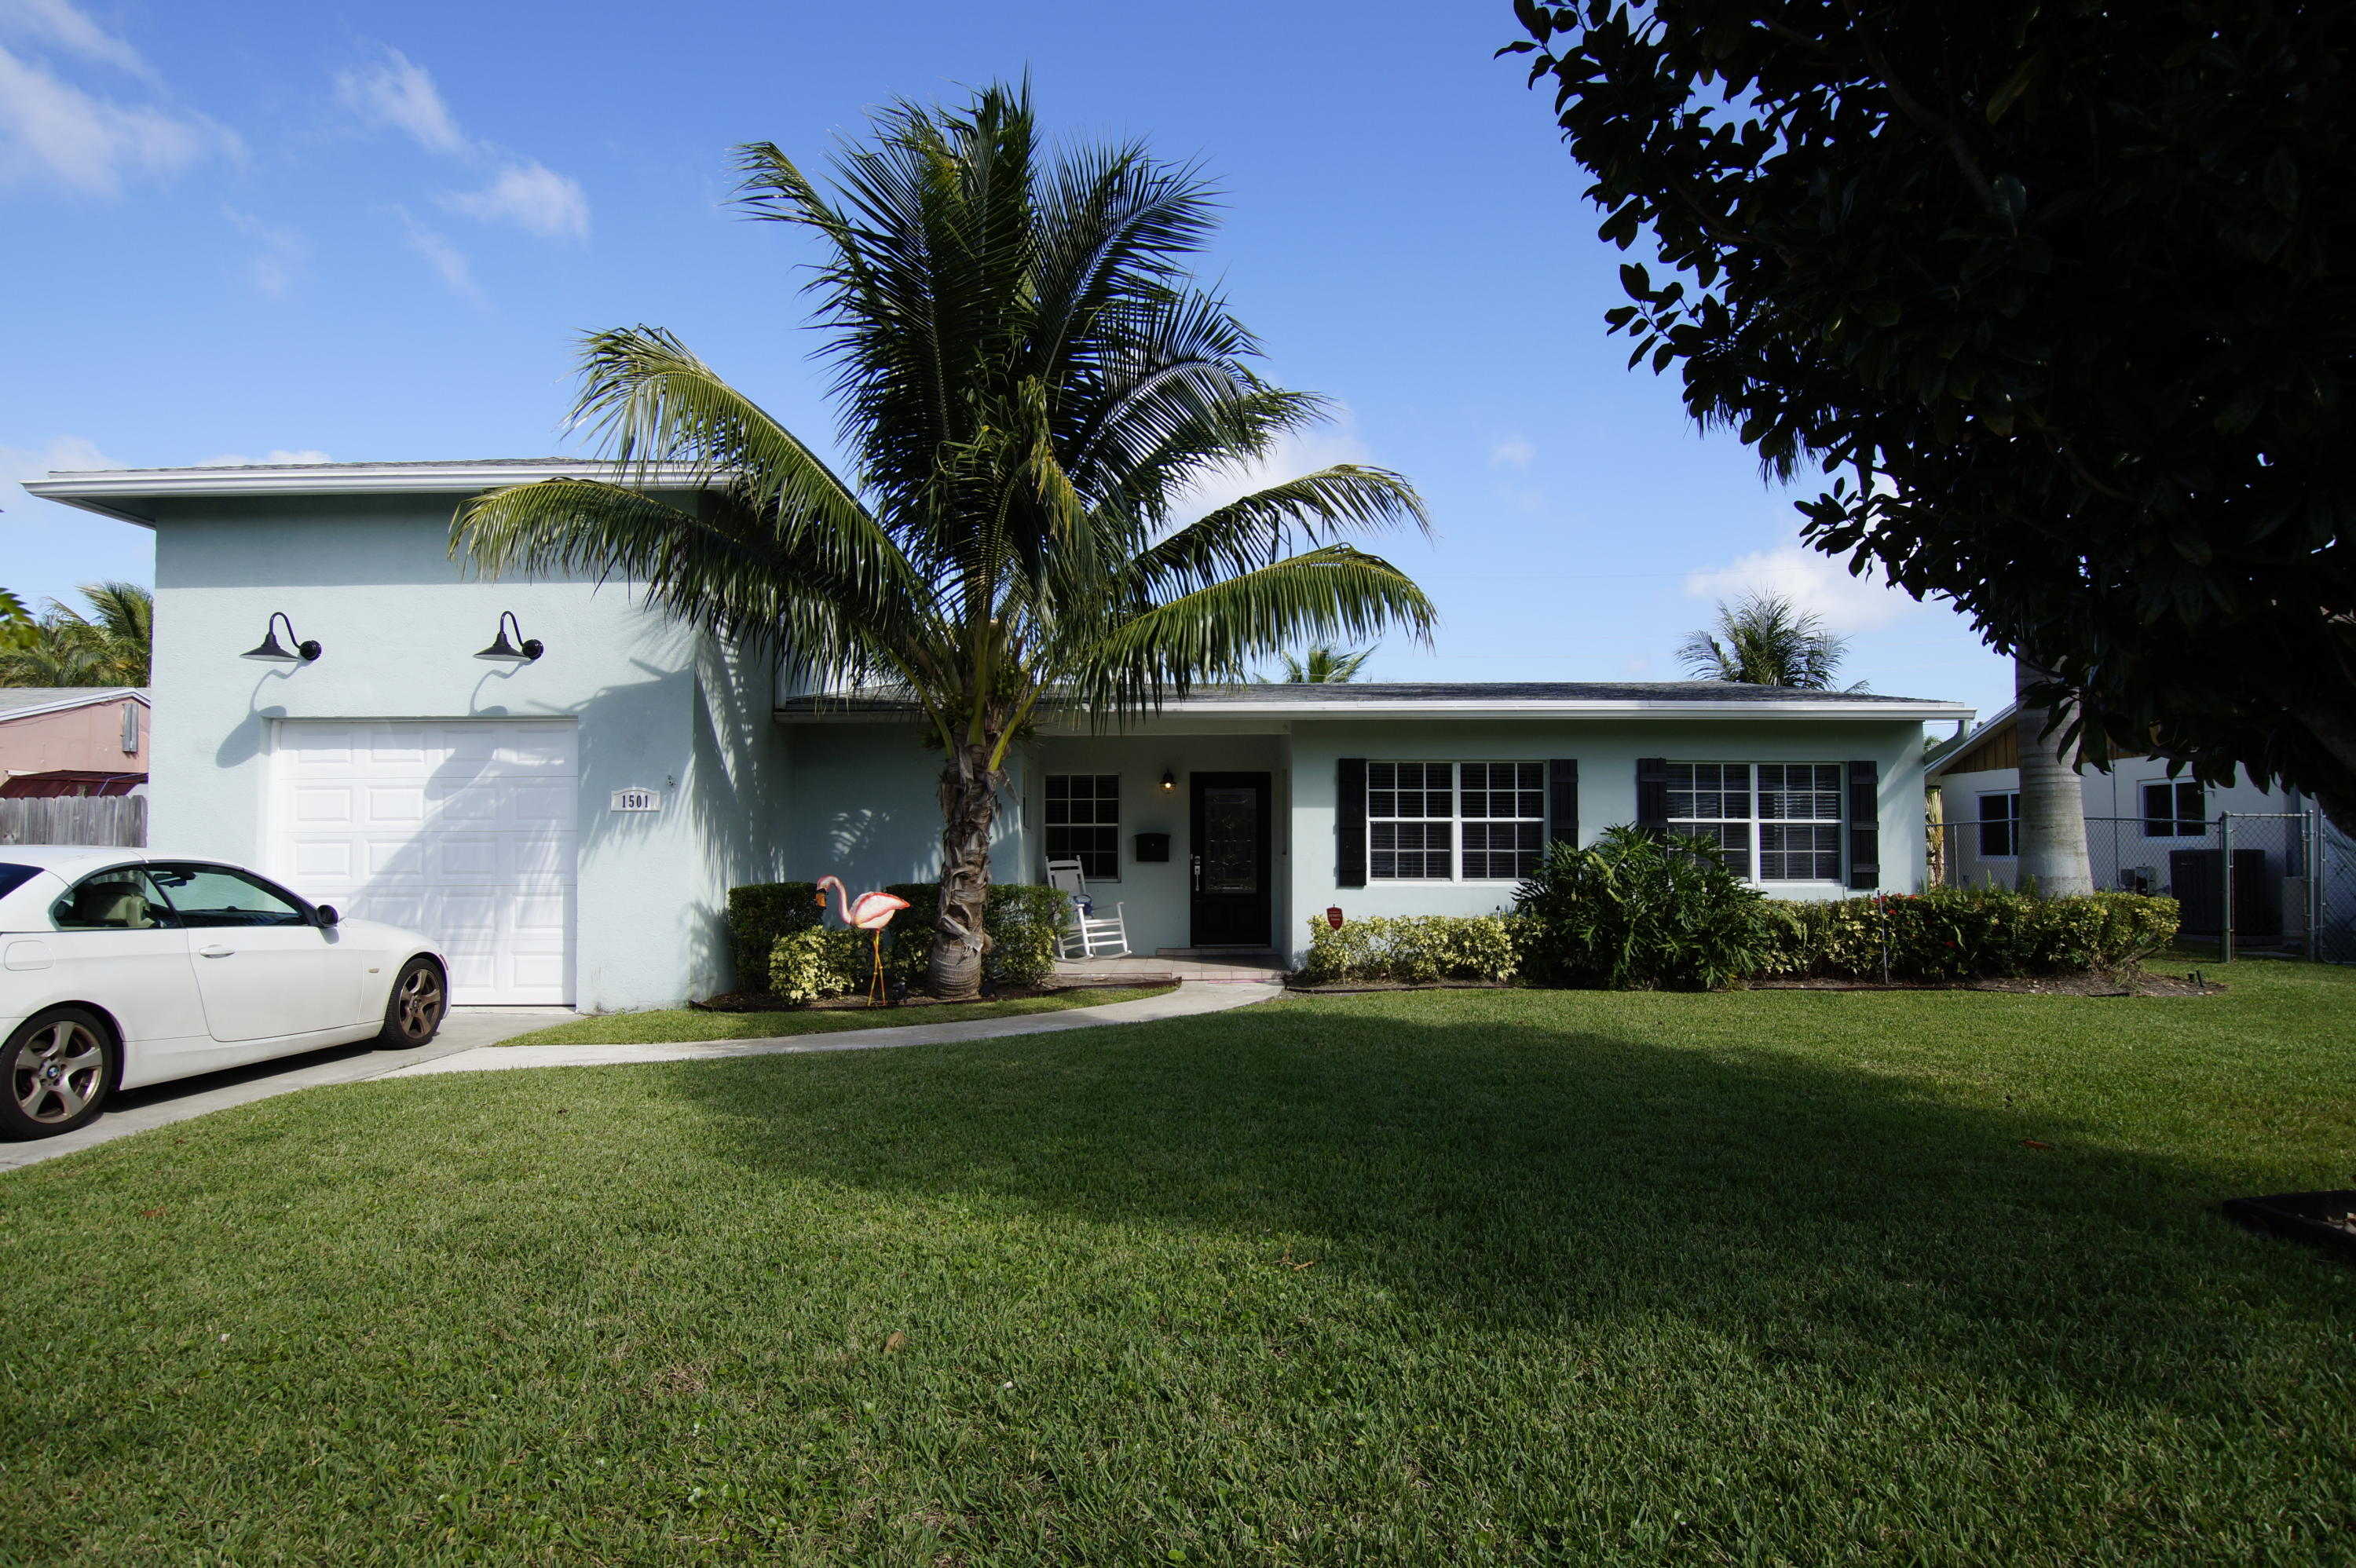 1501 Dale Lane, Delray Beach, Florida 33444, 3 Bedrooms Bedrooms, ,2 BathroomsBathrooms,Single Family,For Rent,Dale,1,RX-10577151